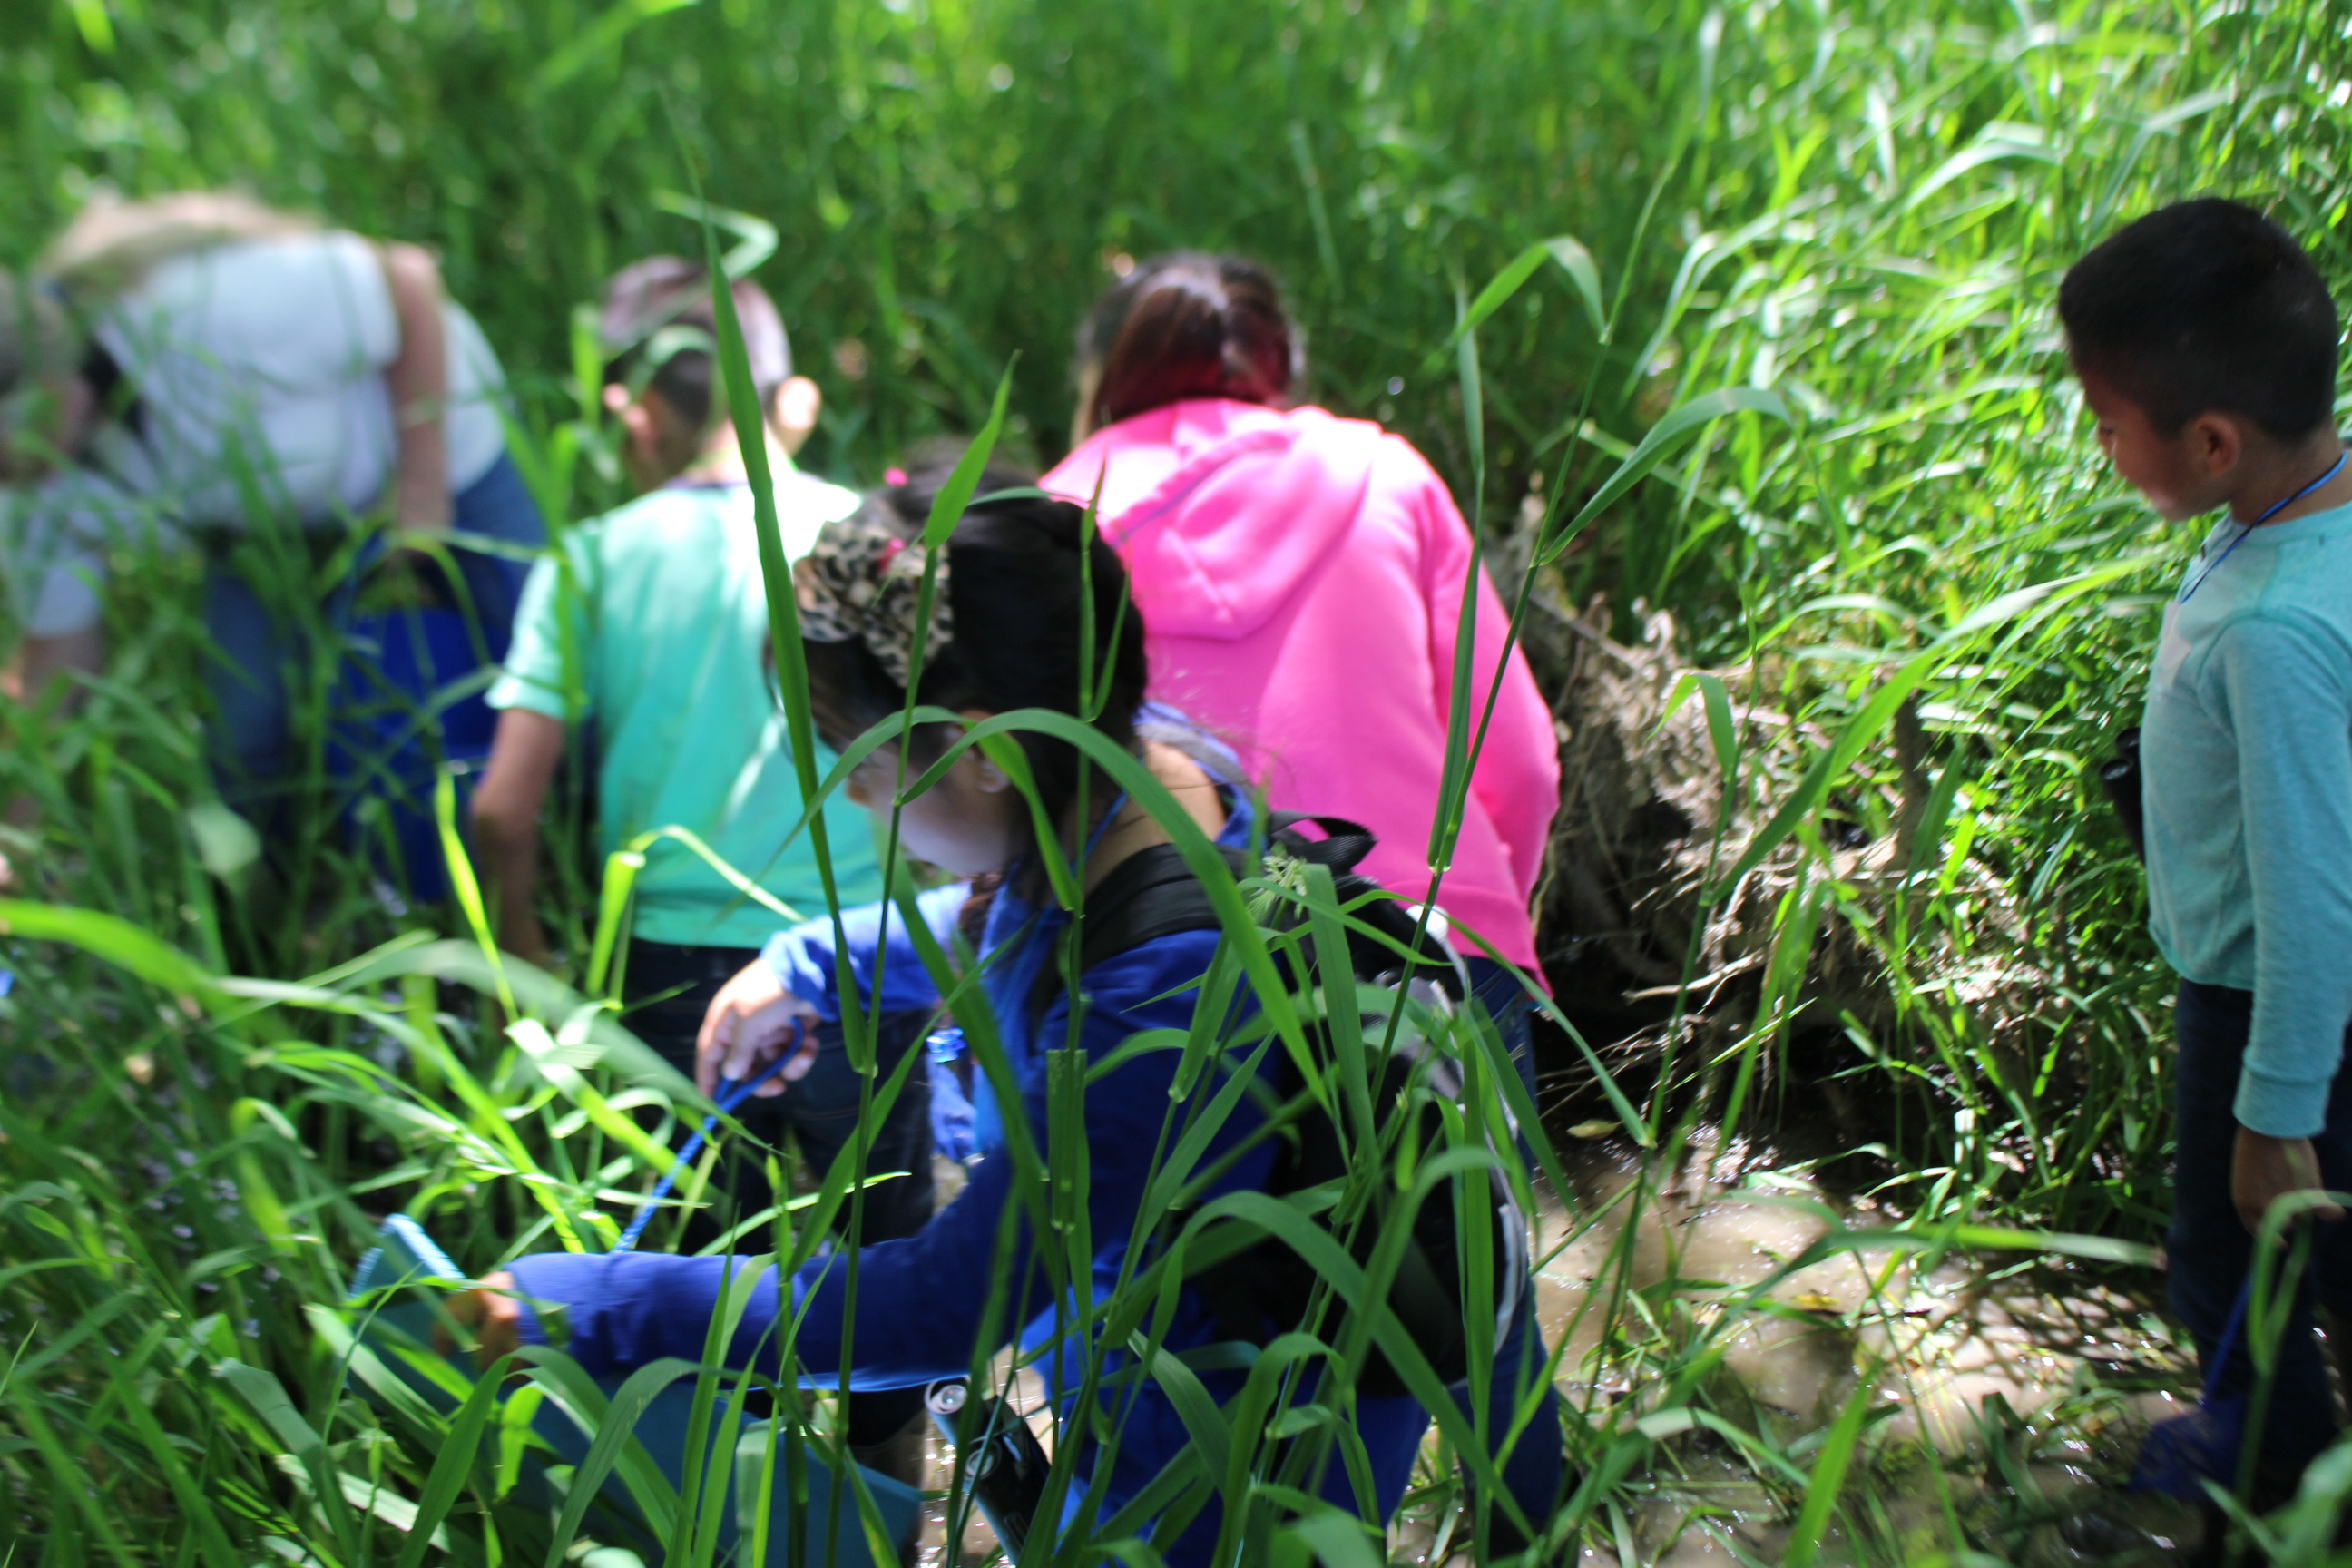 Youth in the Kulshan Creek Neighborhood program search for frogs in the wetlands of Utopia Conservation Area. Photograph credit: NCI staff.